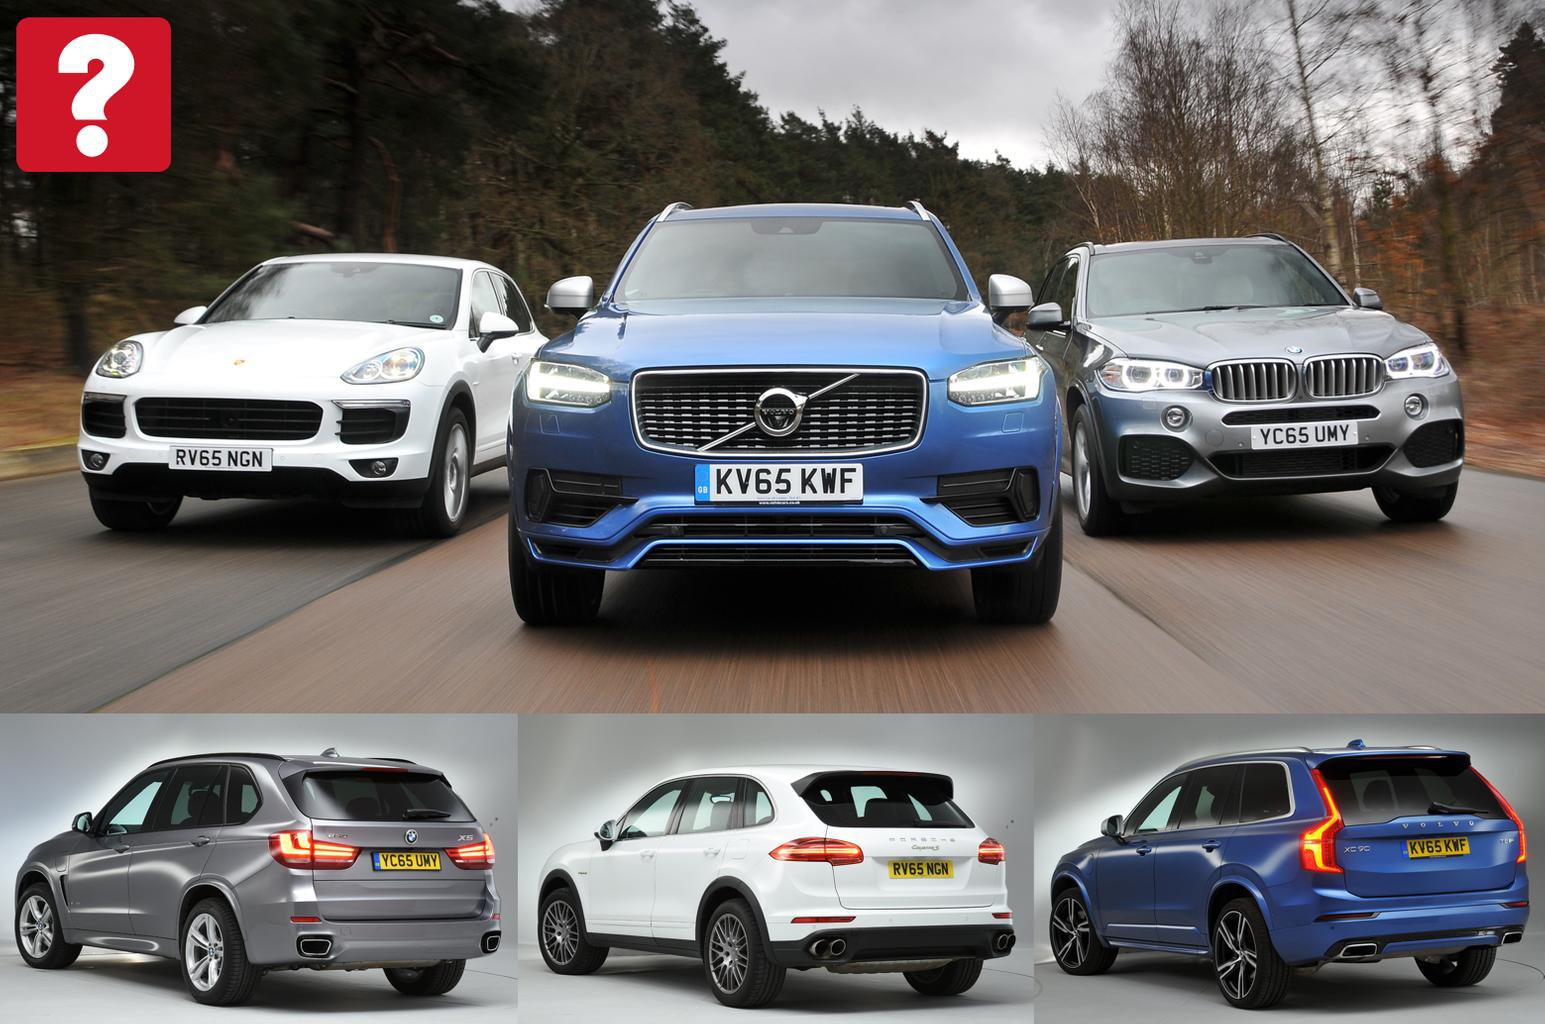 Bmw X5 Vs Porsche Cayenne Vs Volvo Xc90 What Car